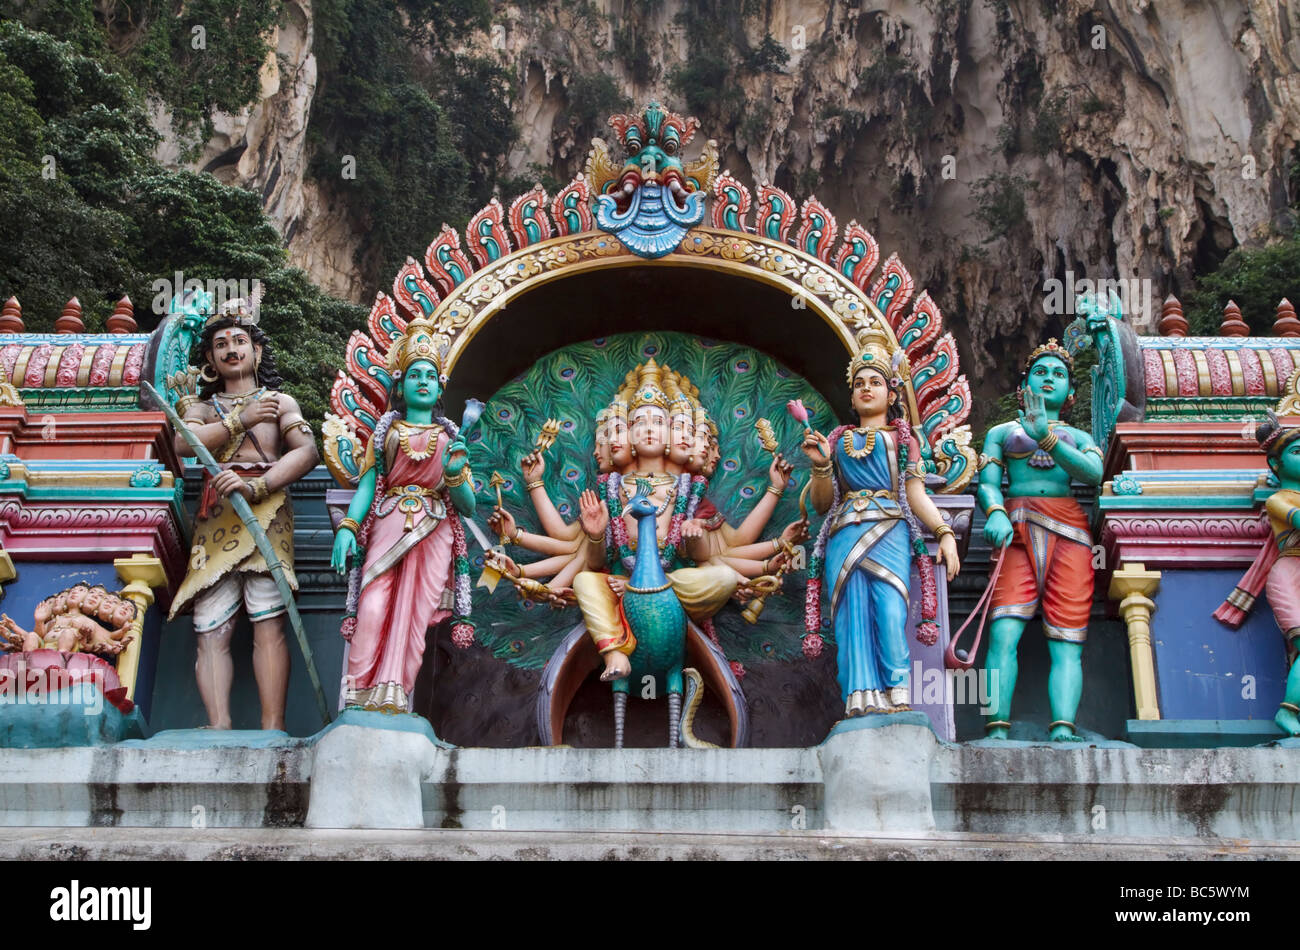 Statues of Lord Murugan and Hindu deities on top of a temple at the base of the steps at Batu Caves, Kuala Lumpur, - Stock Image